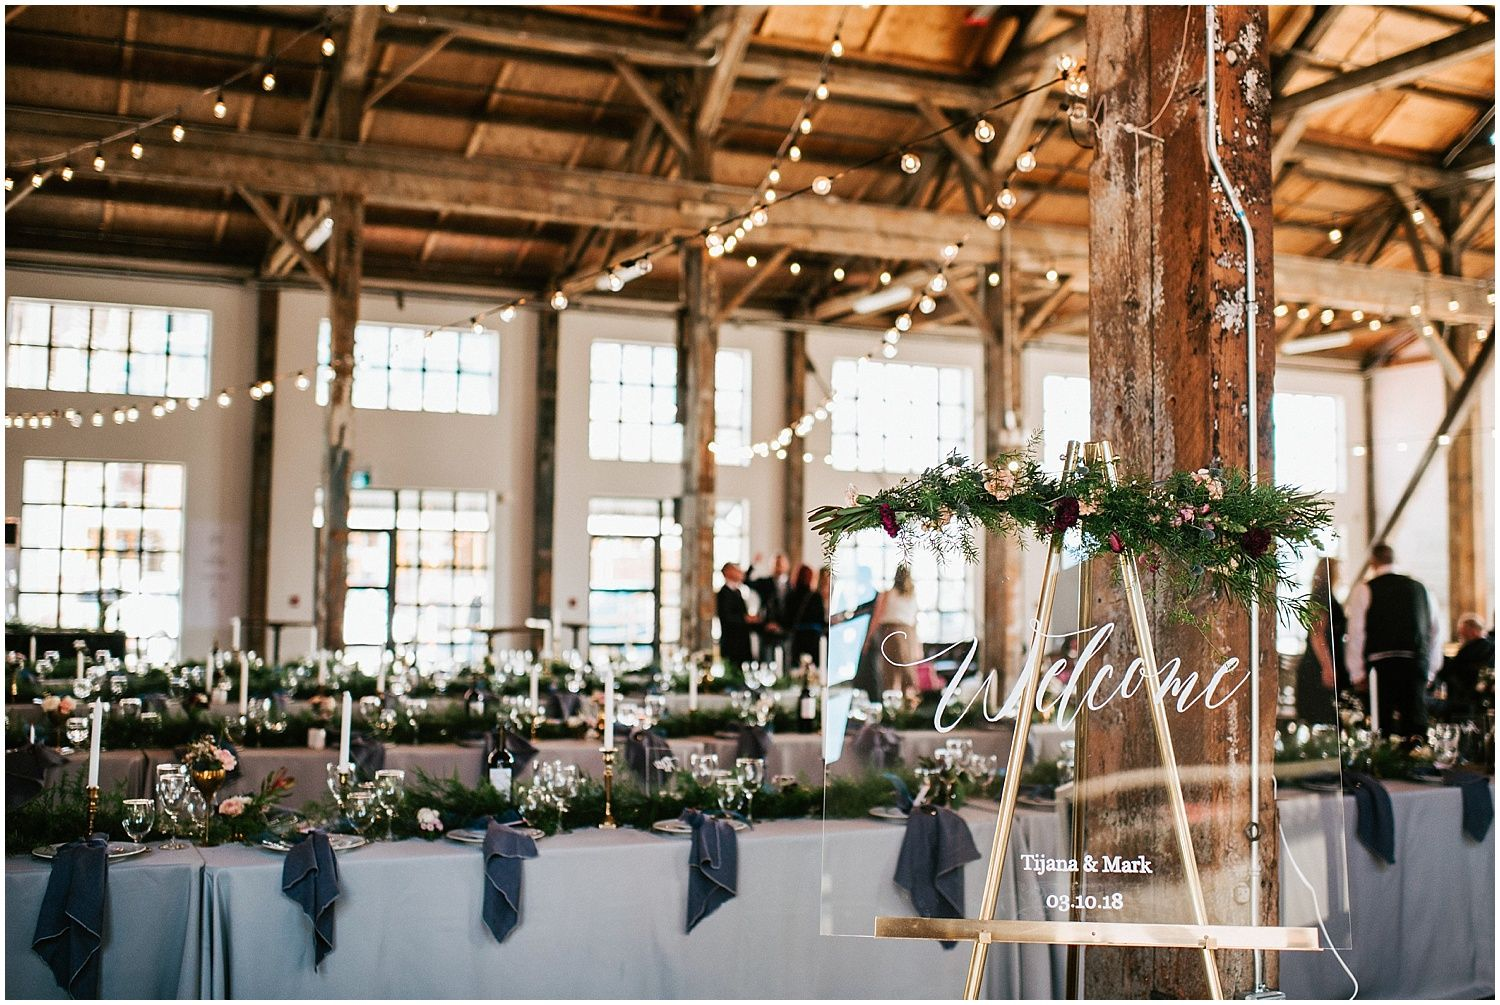 Wedding chair decorations diy  north vancouver diy wedding calligraphy glass sign greenery pipe